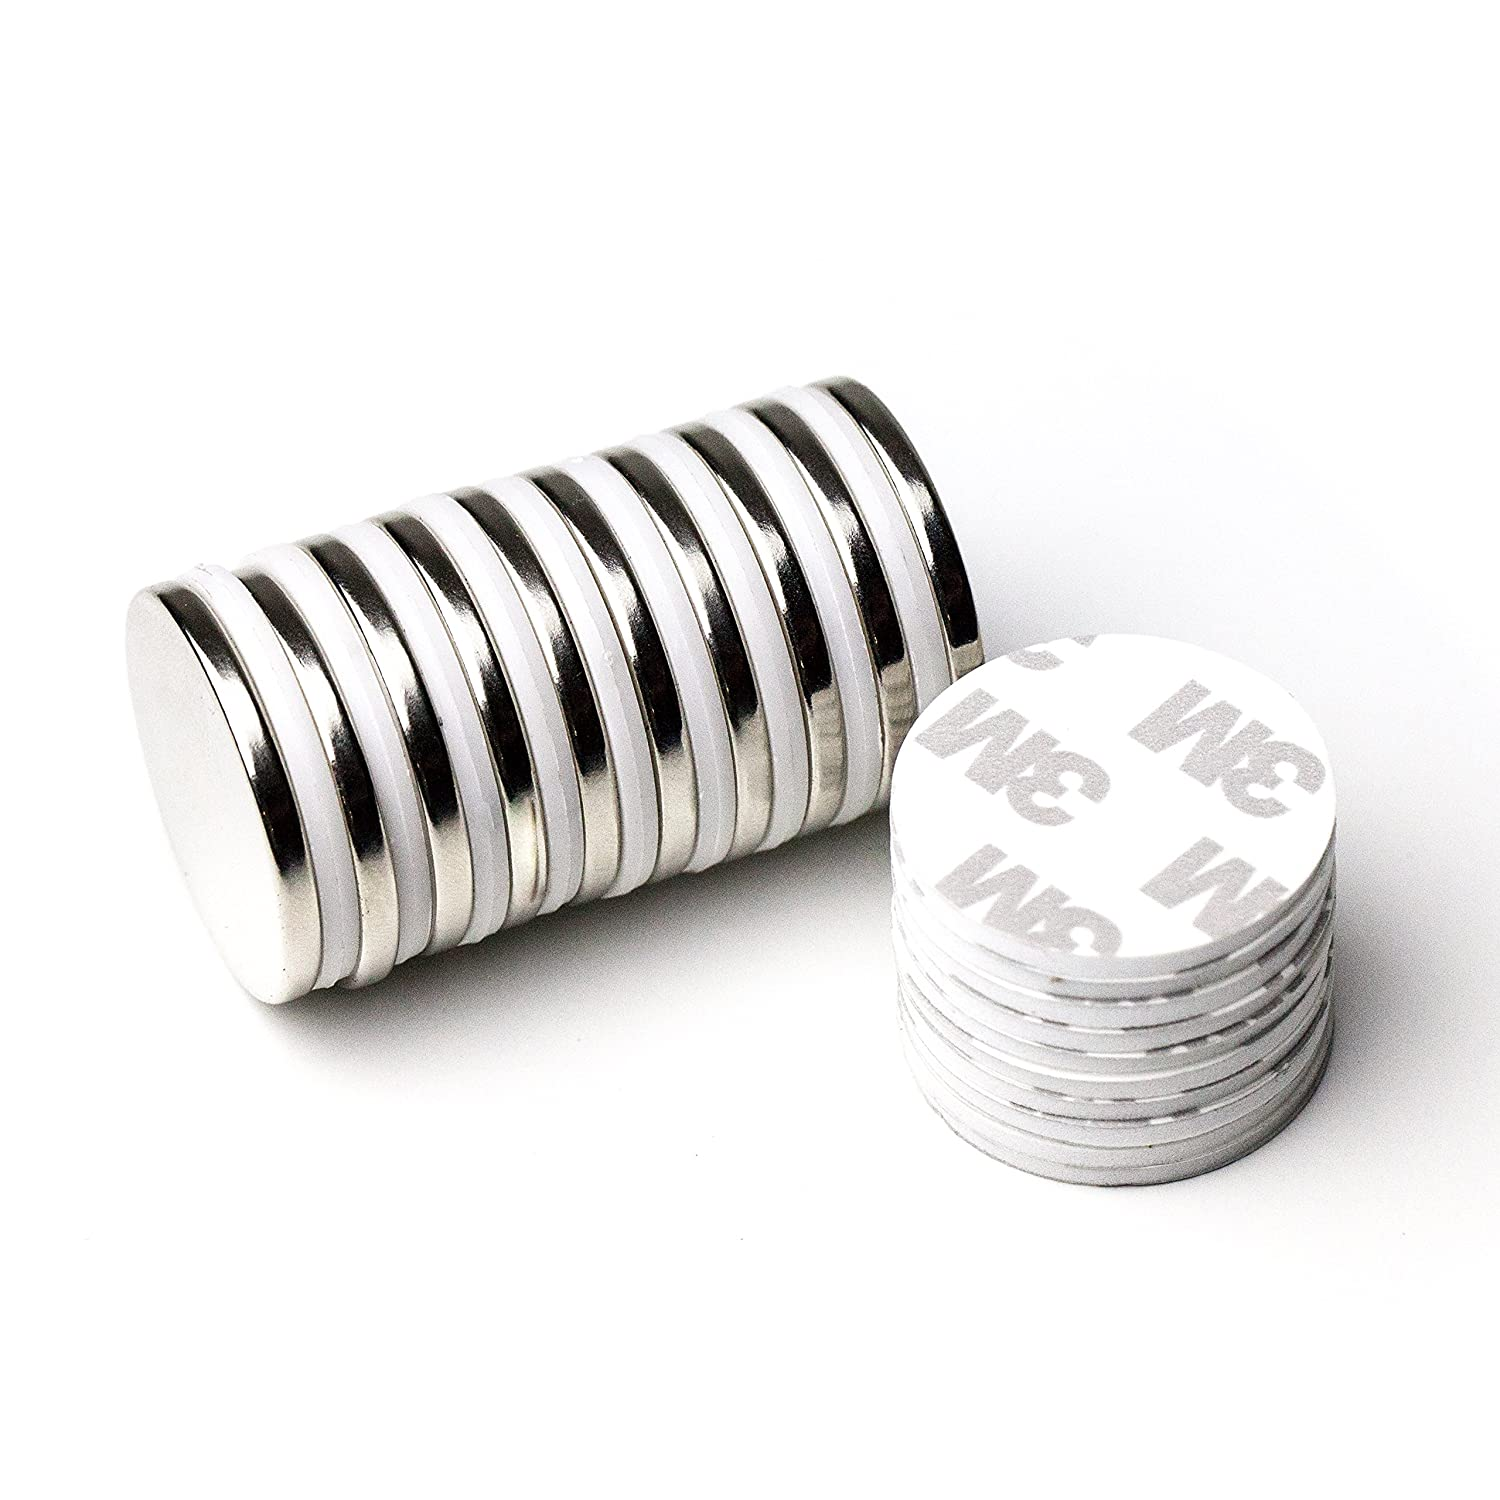 """10Pc Super Strong N42 Neodymium Magnet 1.26"""" x 1/8"""" W/3m Adhesive NdFeB Discs, The World's Strongest & Most Powerful Rare Earth Magnets by Applied Magnets"""